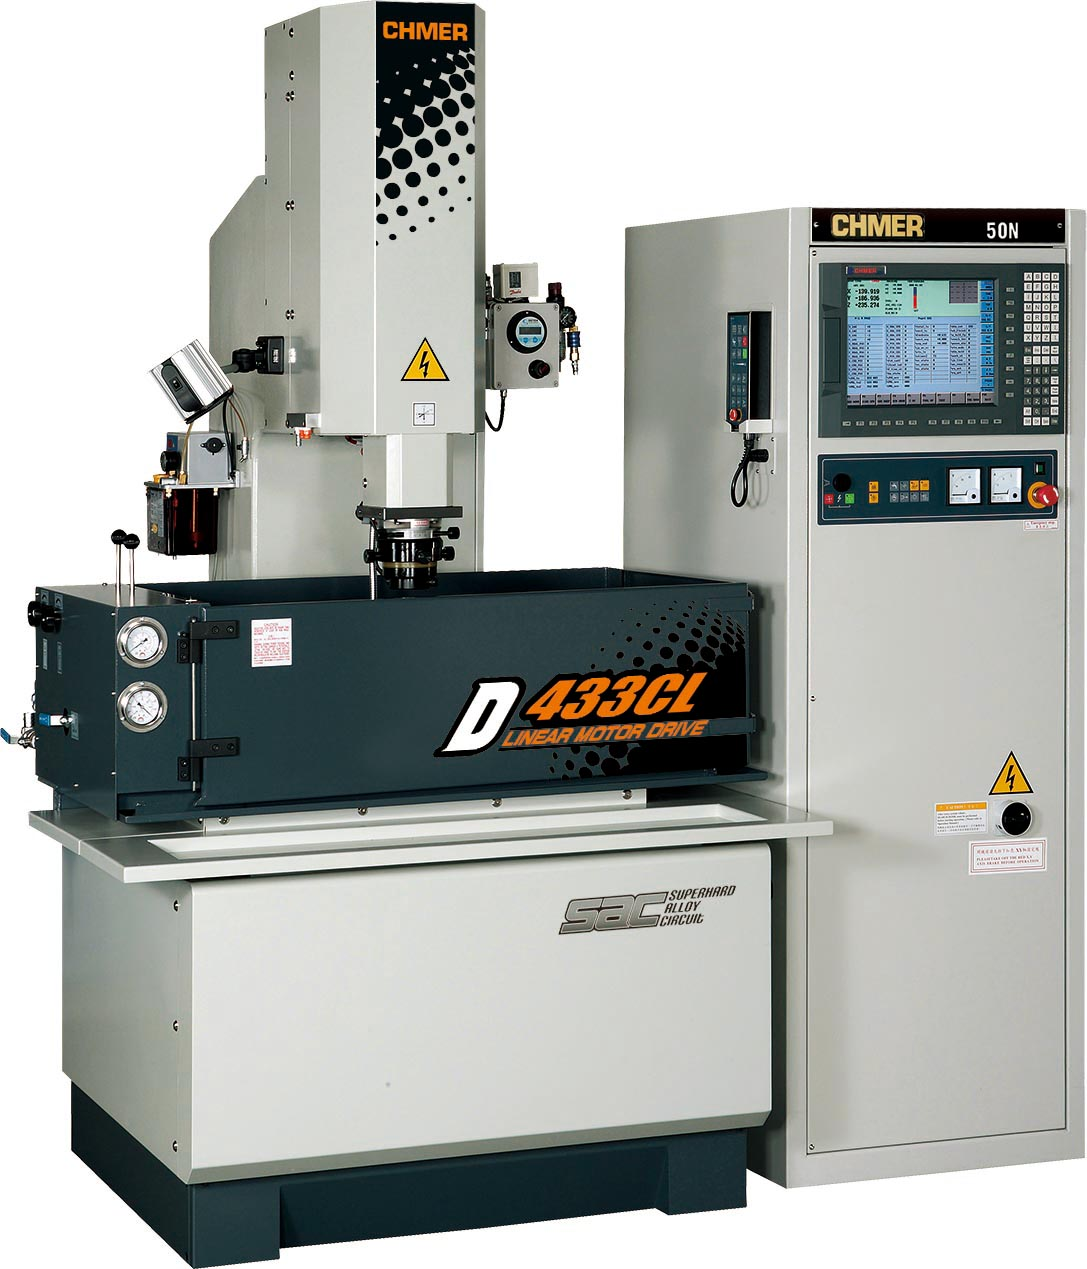 Picture of CHMER CNC Z-Axis Linear Motor D433CL